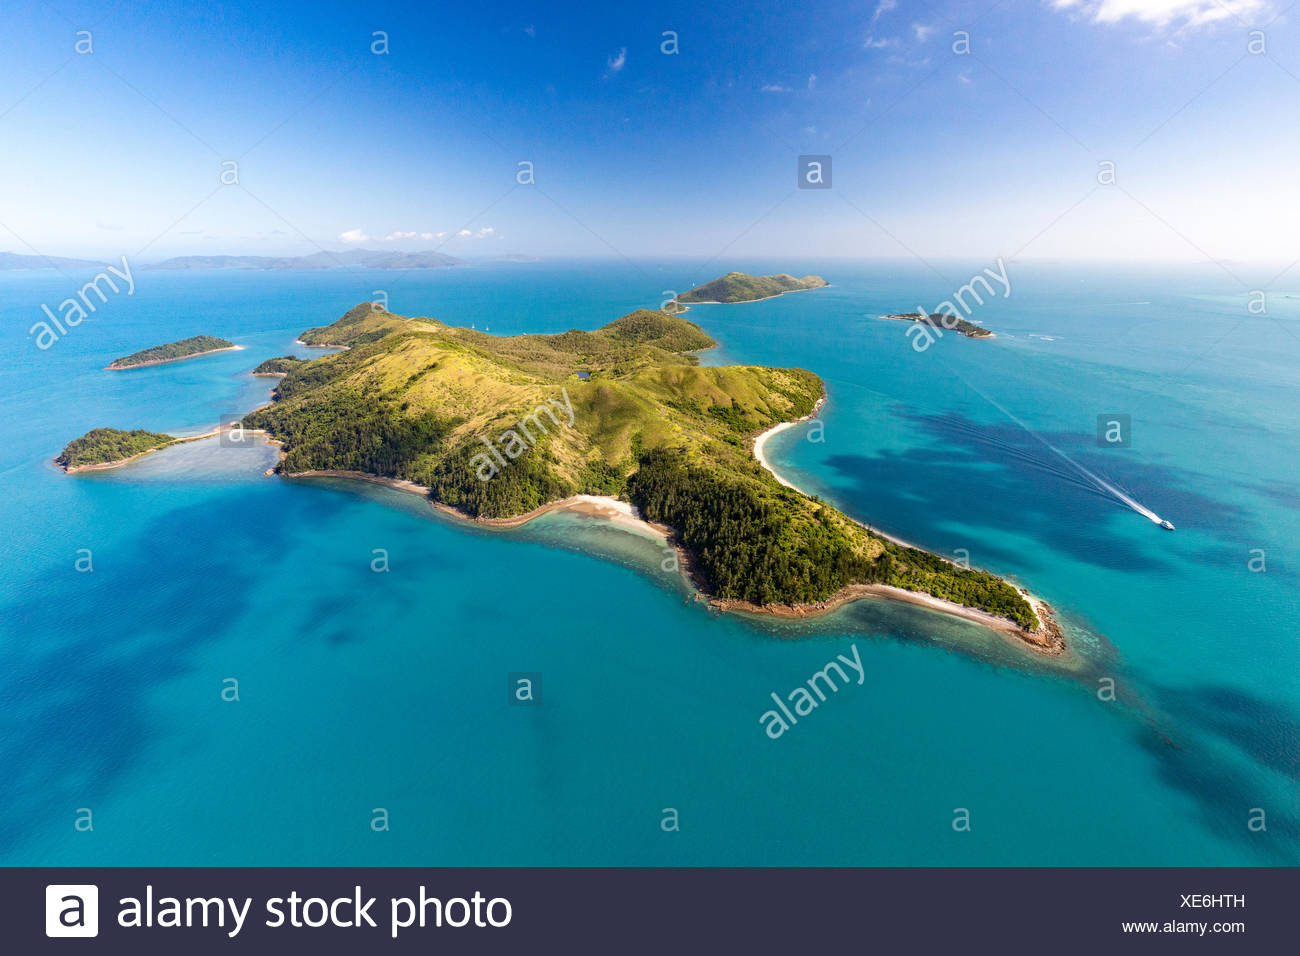 South Molle Island, behind Island Daydream, Whitsunday Islands, Queensland, Australia - Stock Image